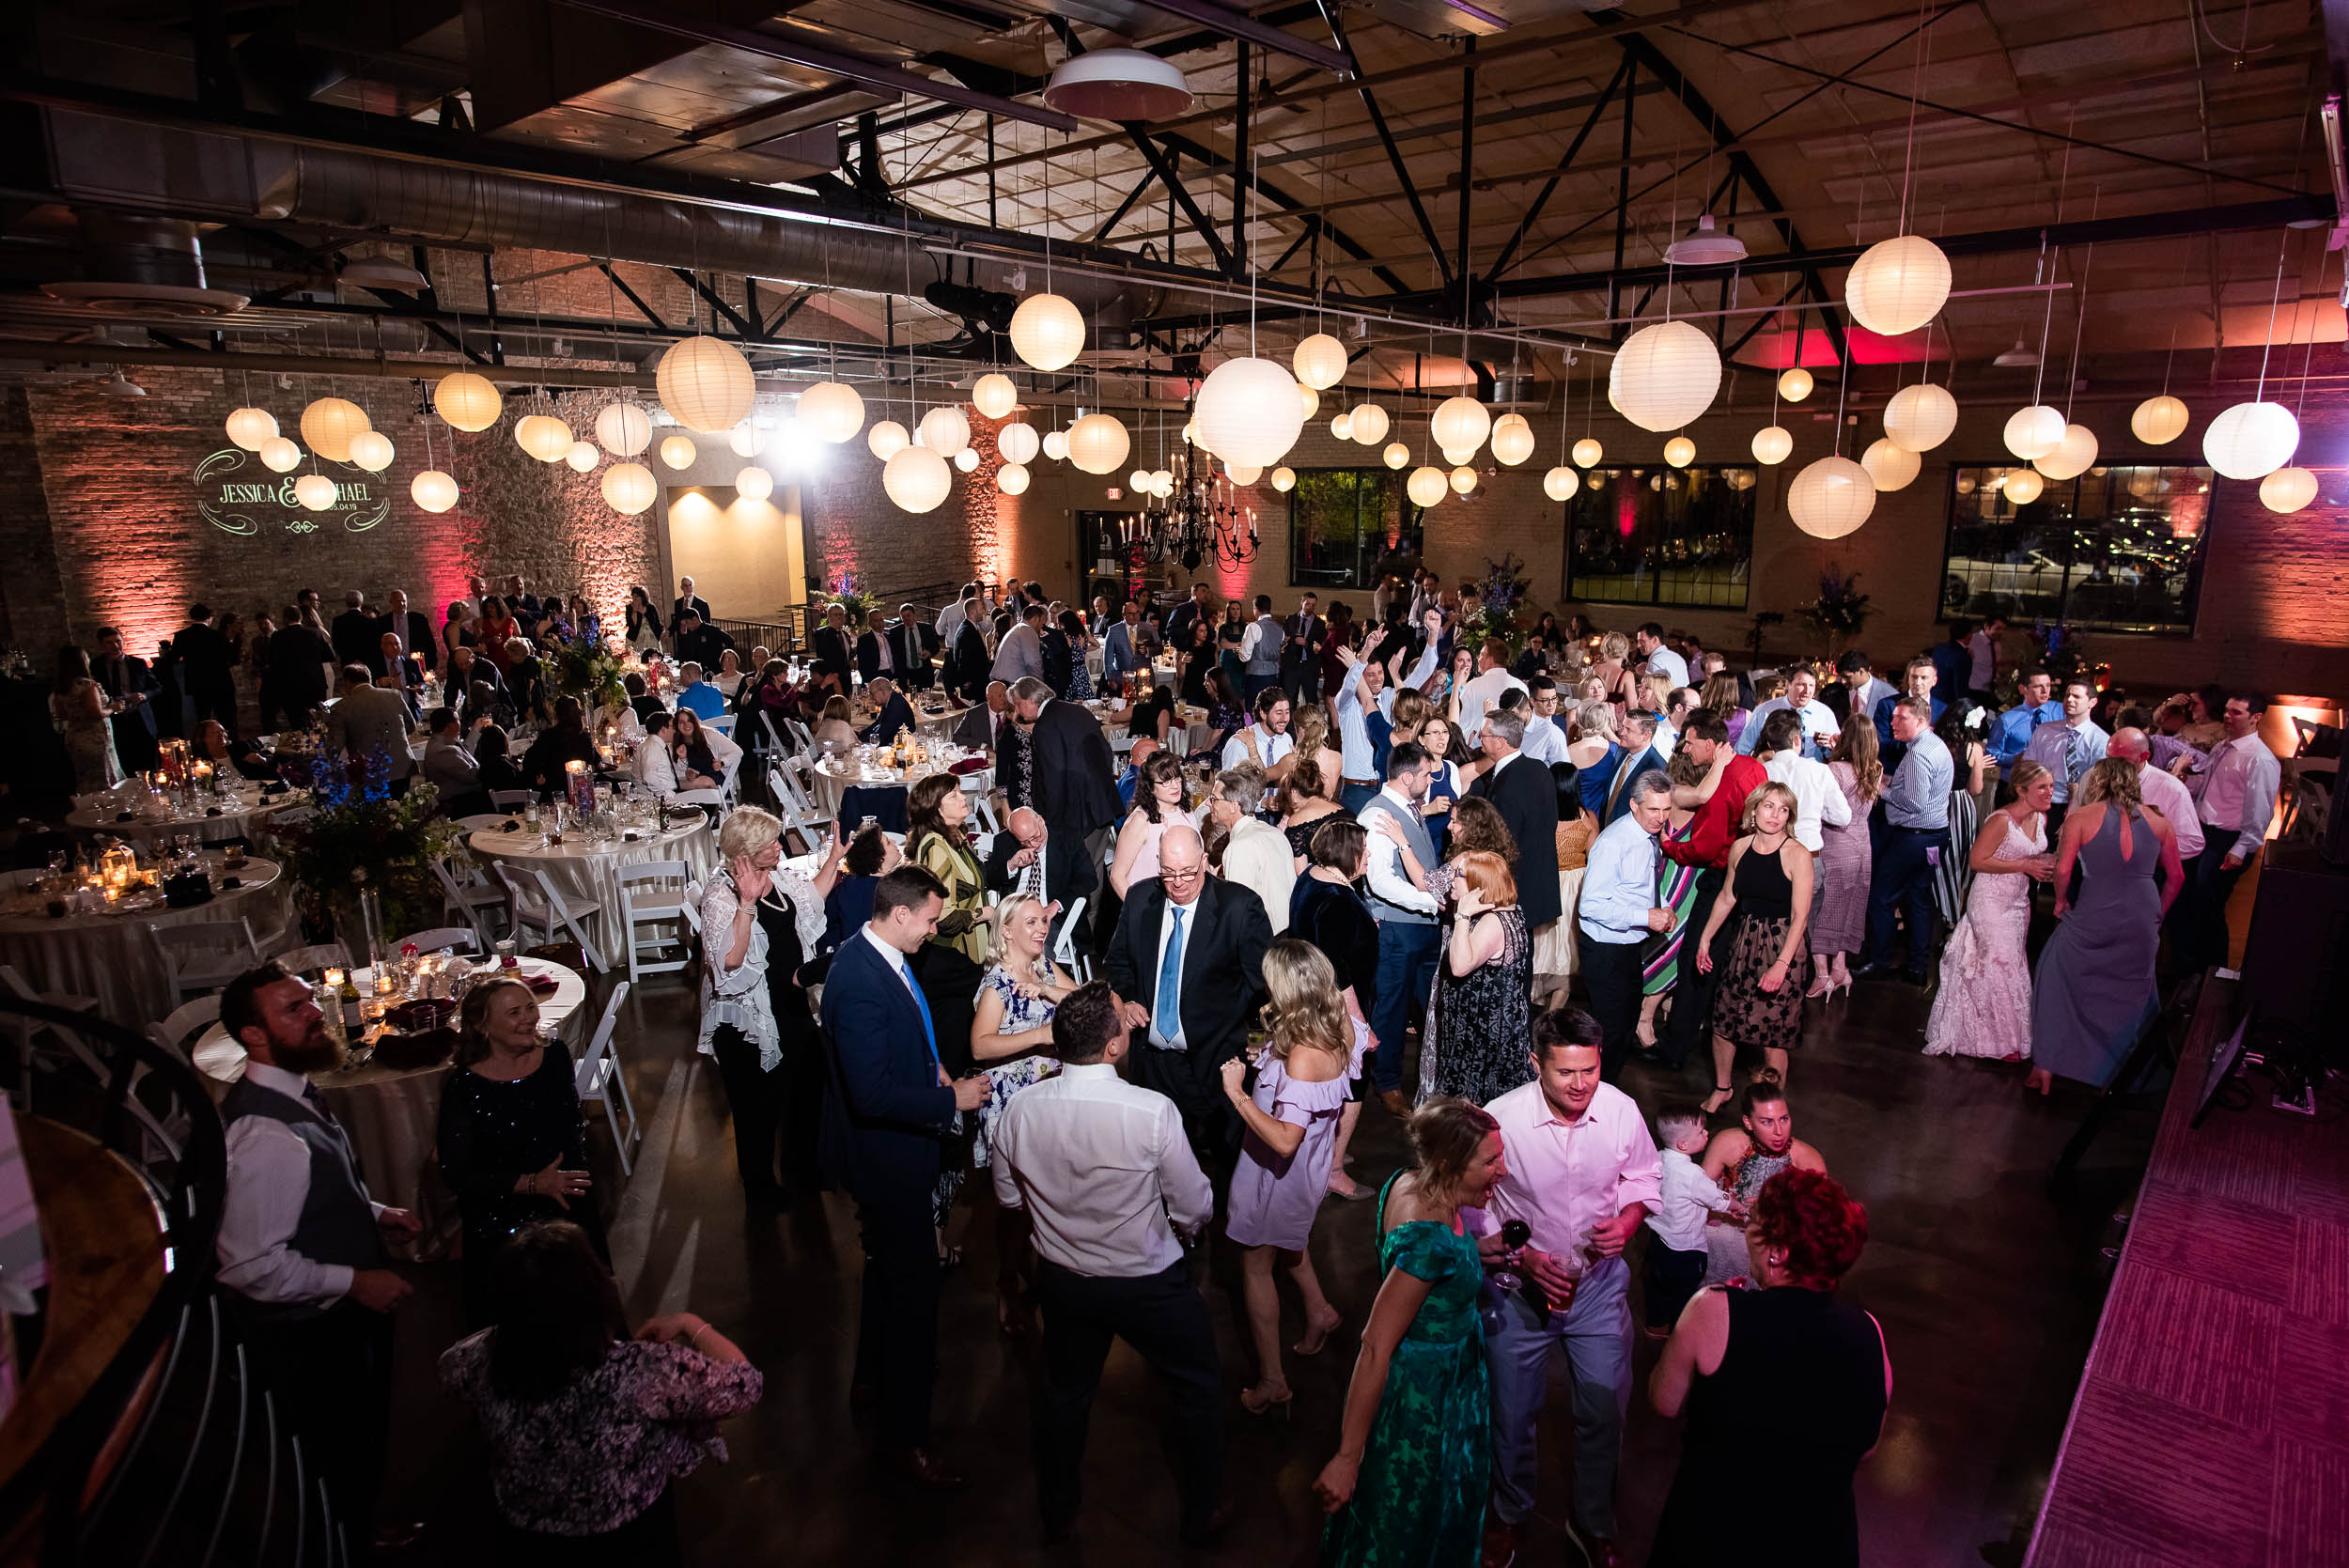 Brewhouse wedding celebration: Modern industrial Chicago wedding inside Prairie Street Brewhouse captured by J. Brown Photography. Find more wedding ideas at jbrownphotography.com!